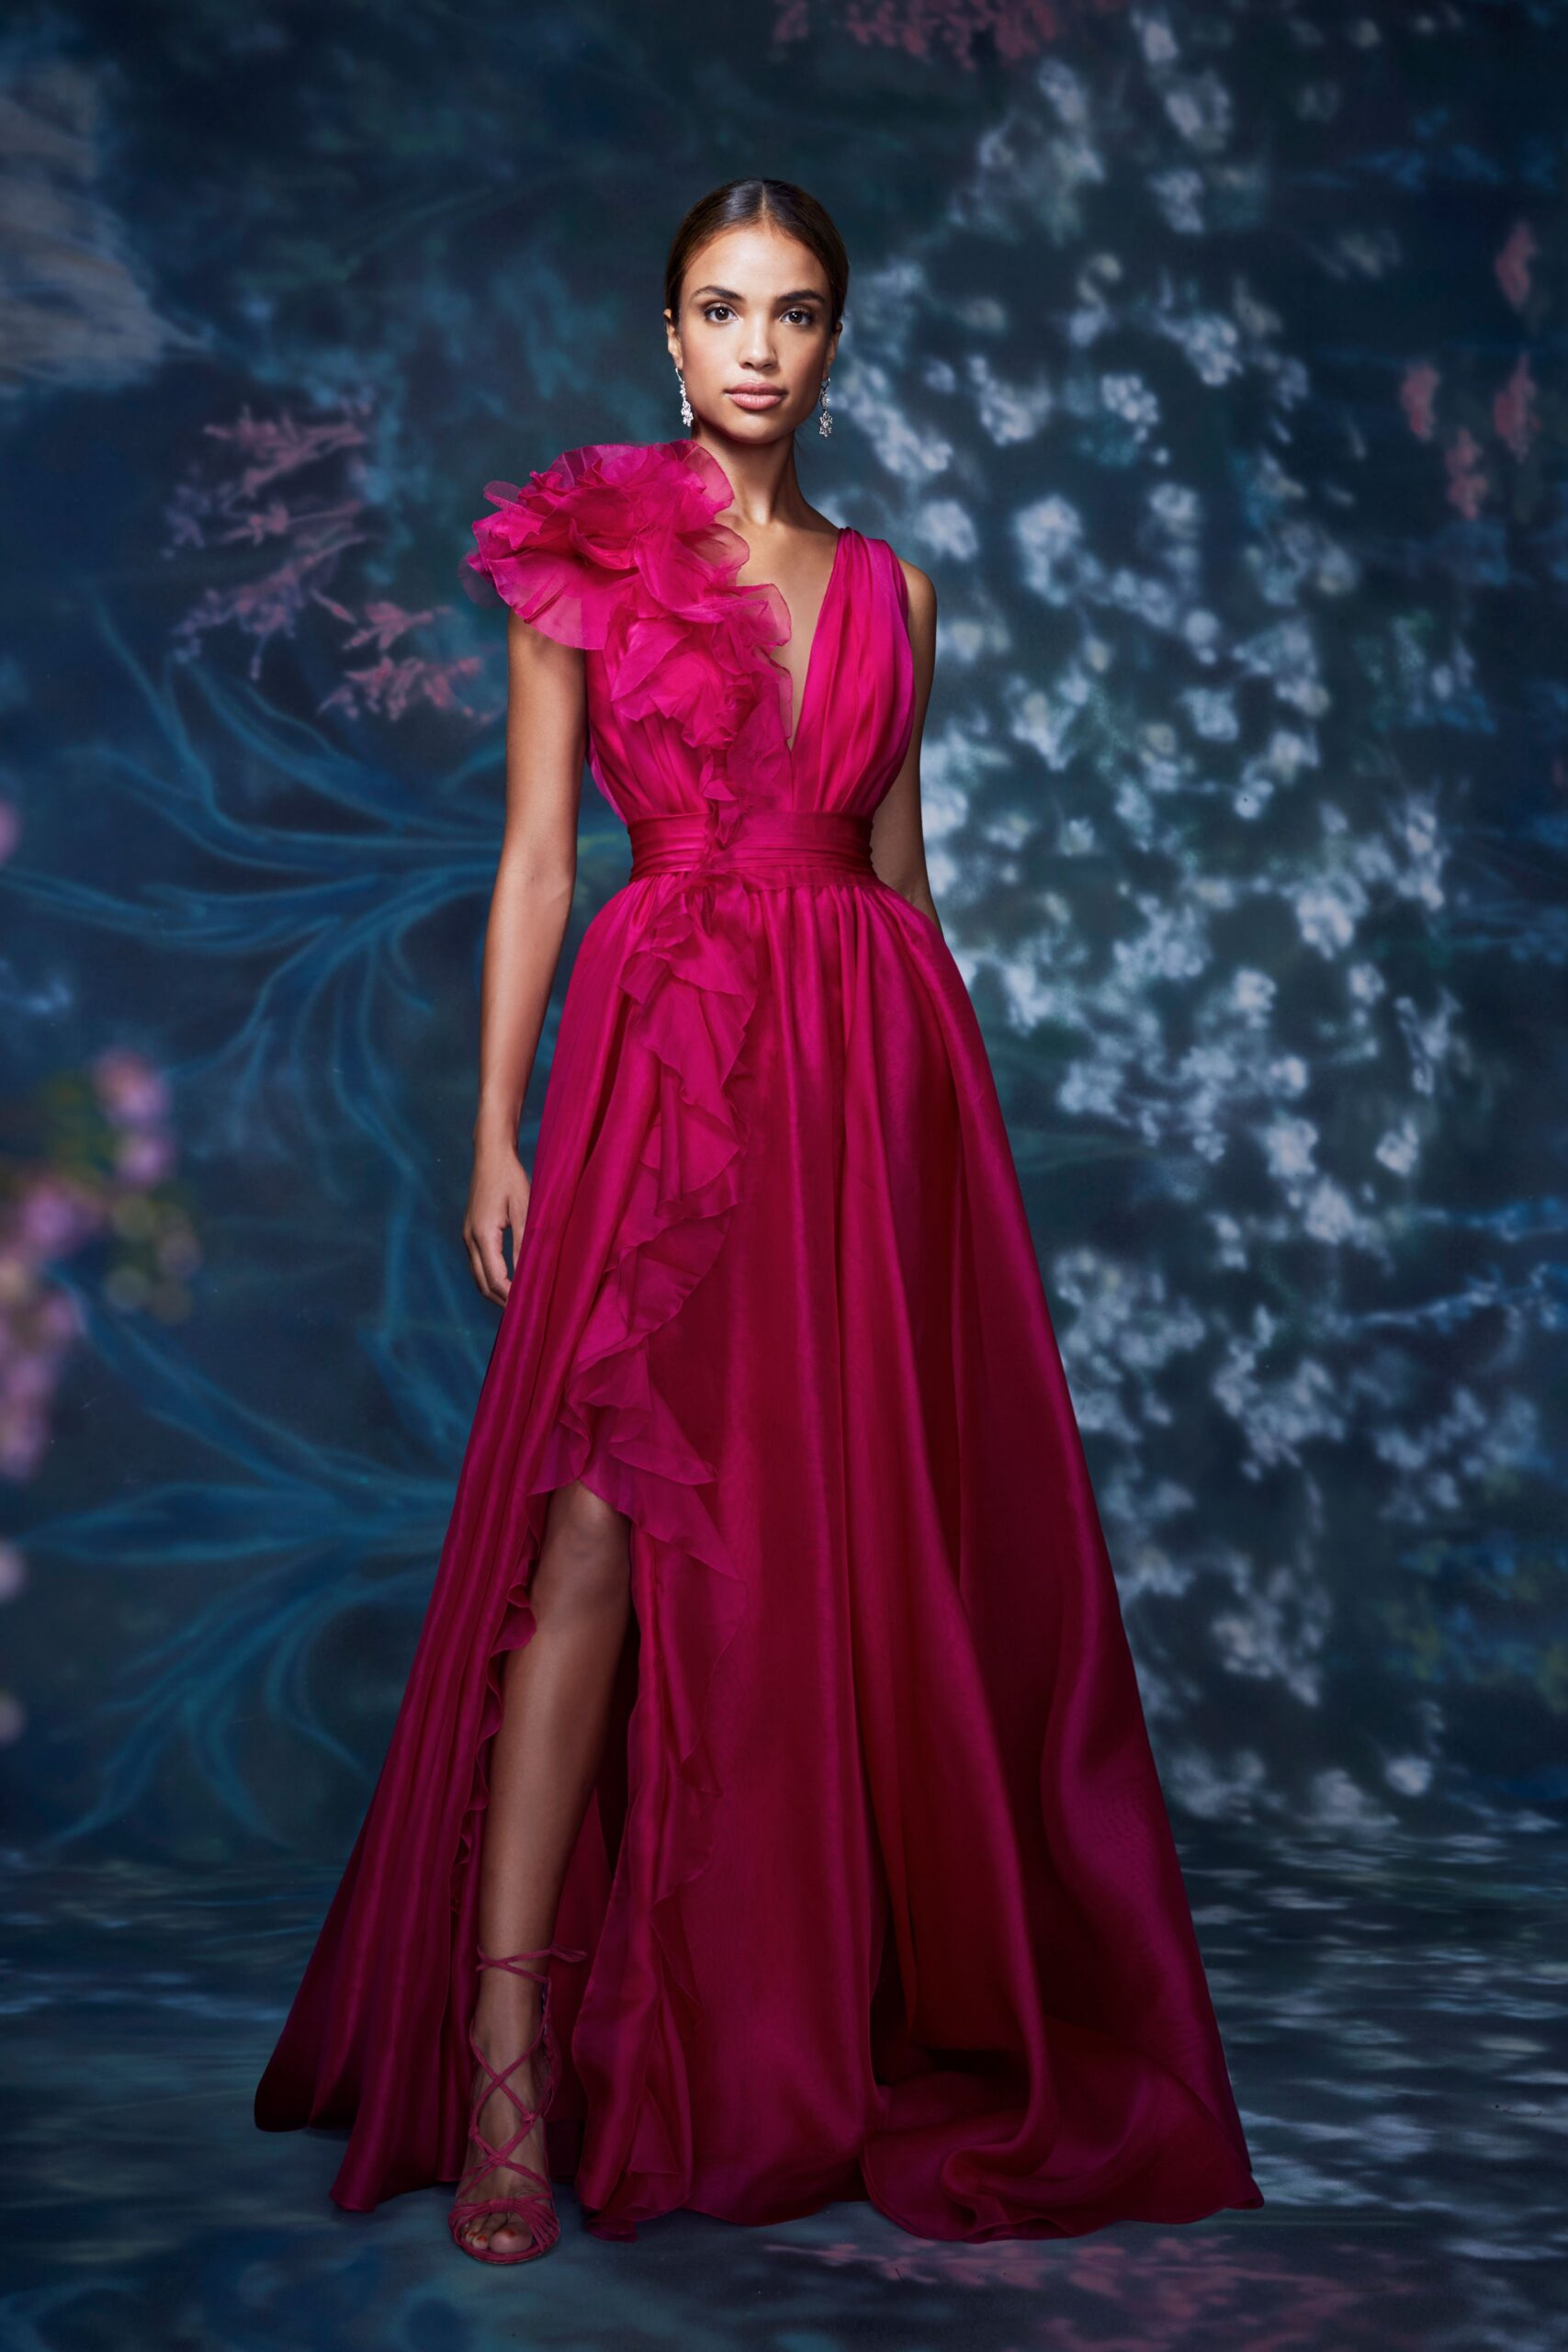 Rosa Lampone - Marchesa Ready-to-Wear Spring 2021